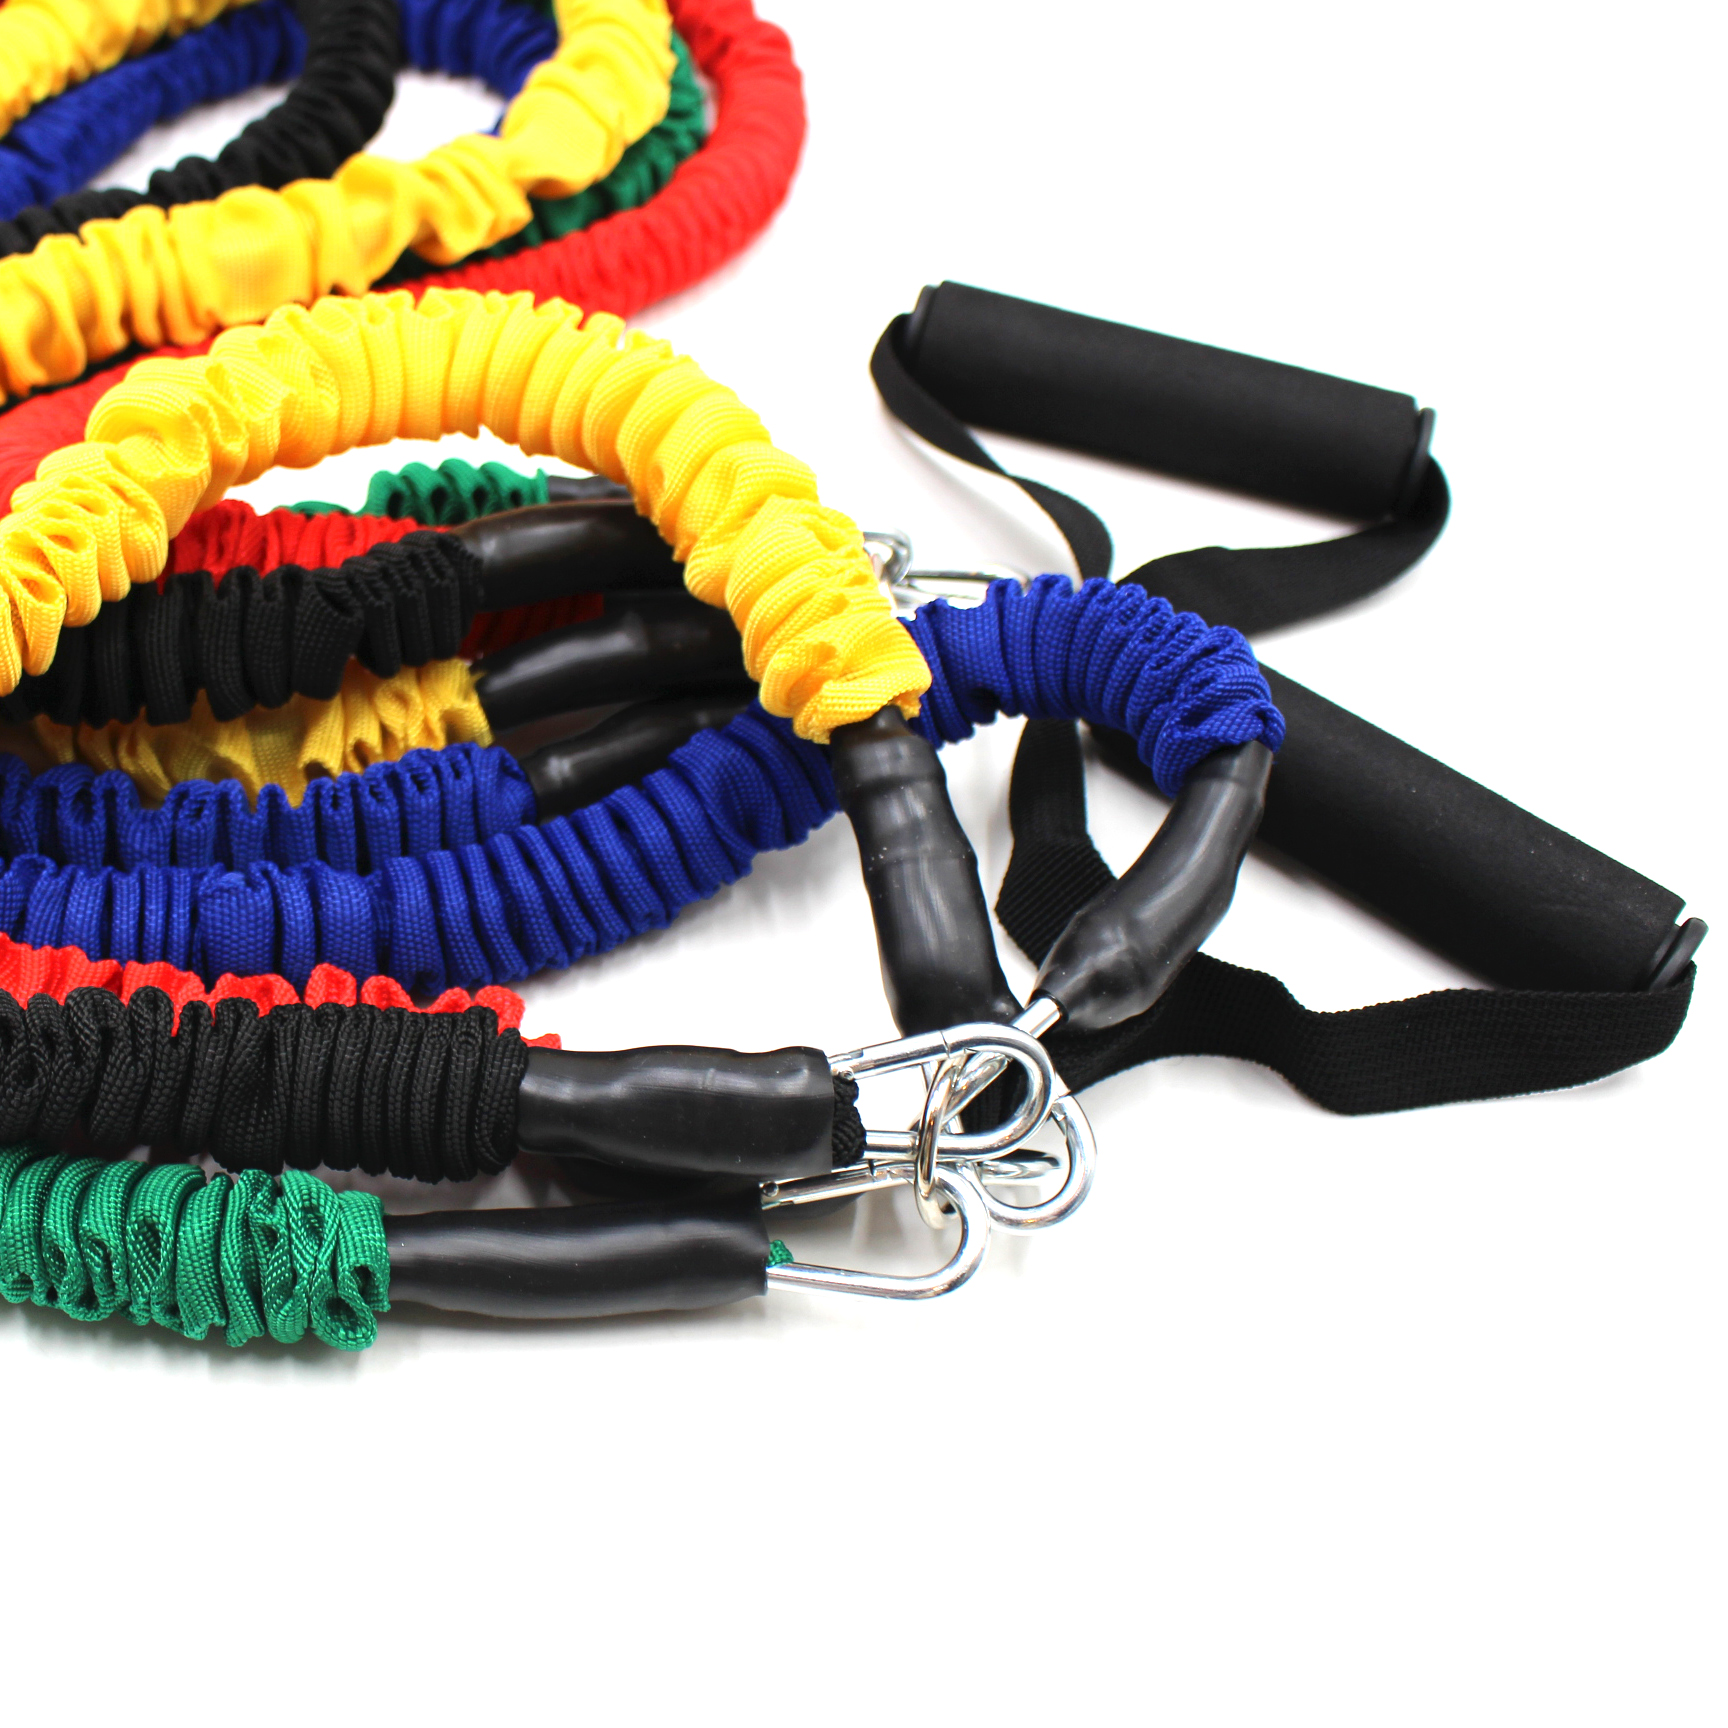 Resistance Bands 11 Pieces Exercise Elastic Bands Set 20lbs to 40lbs